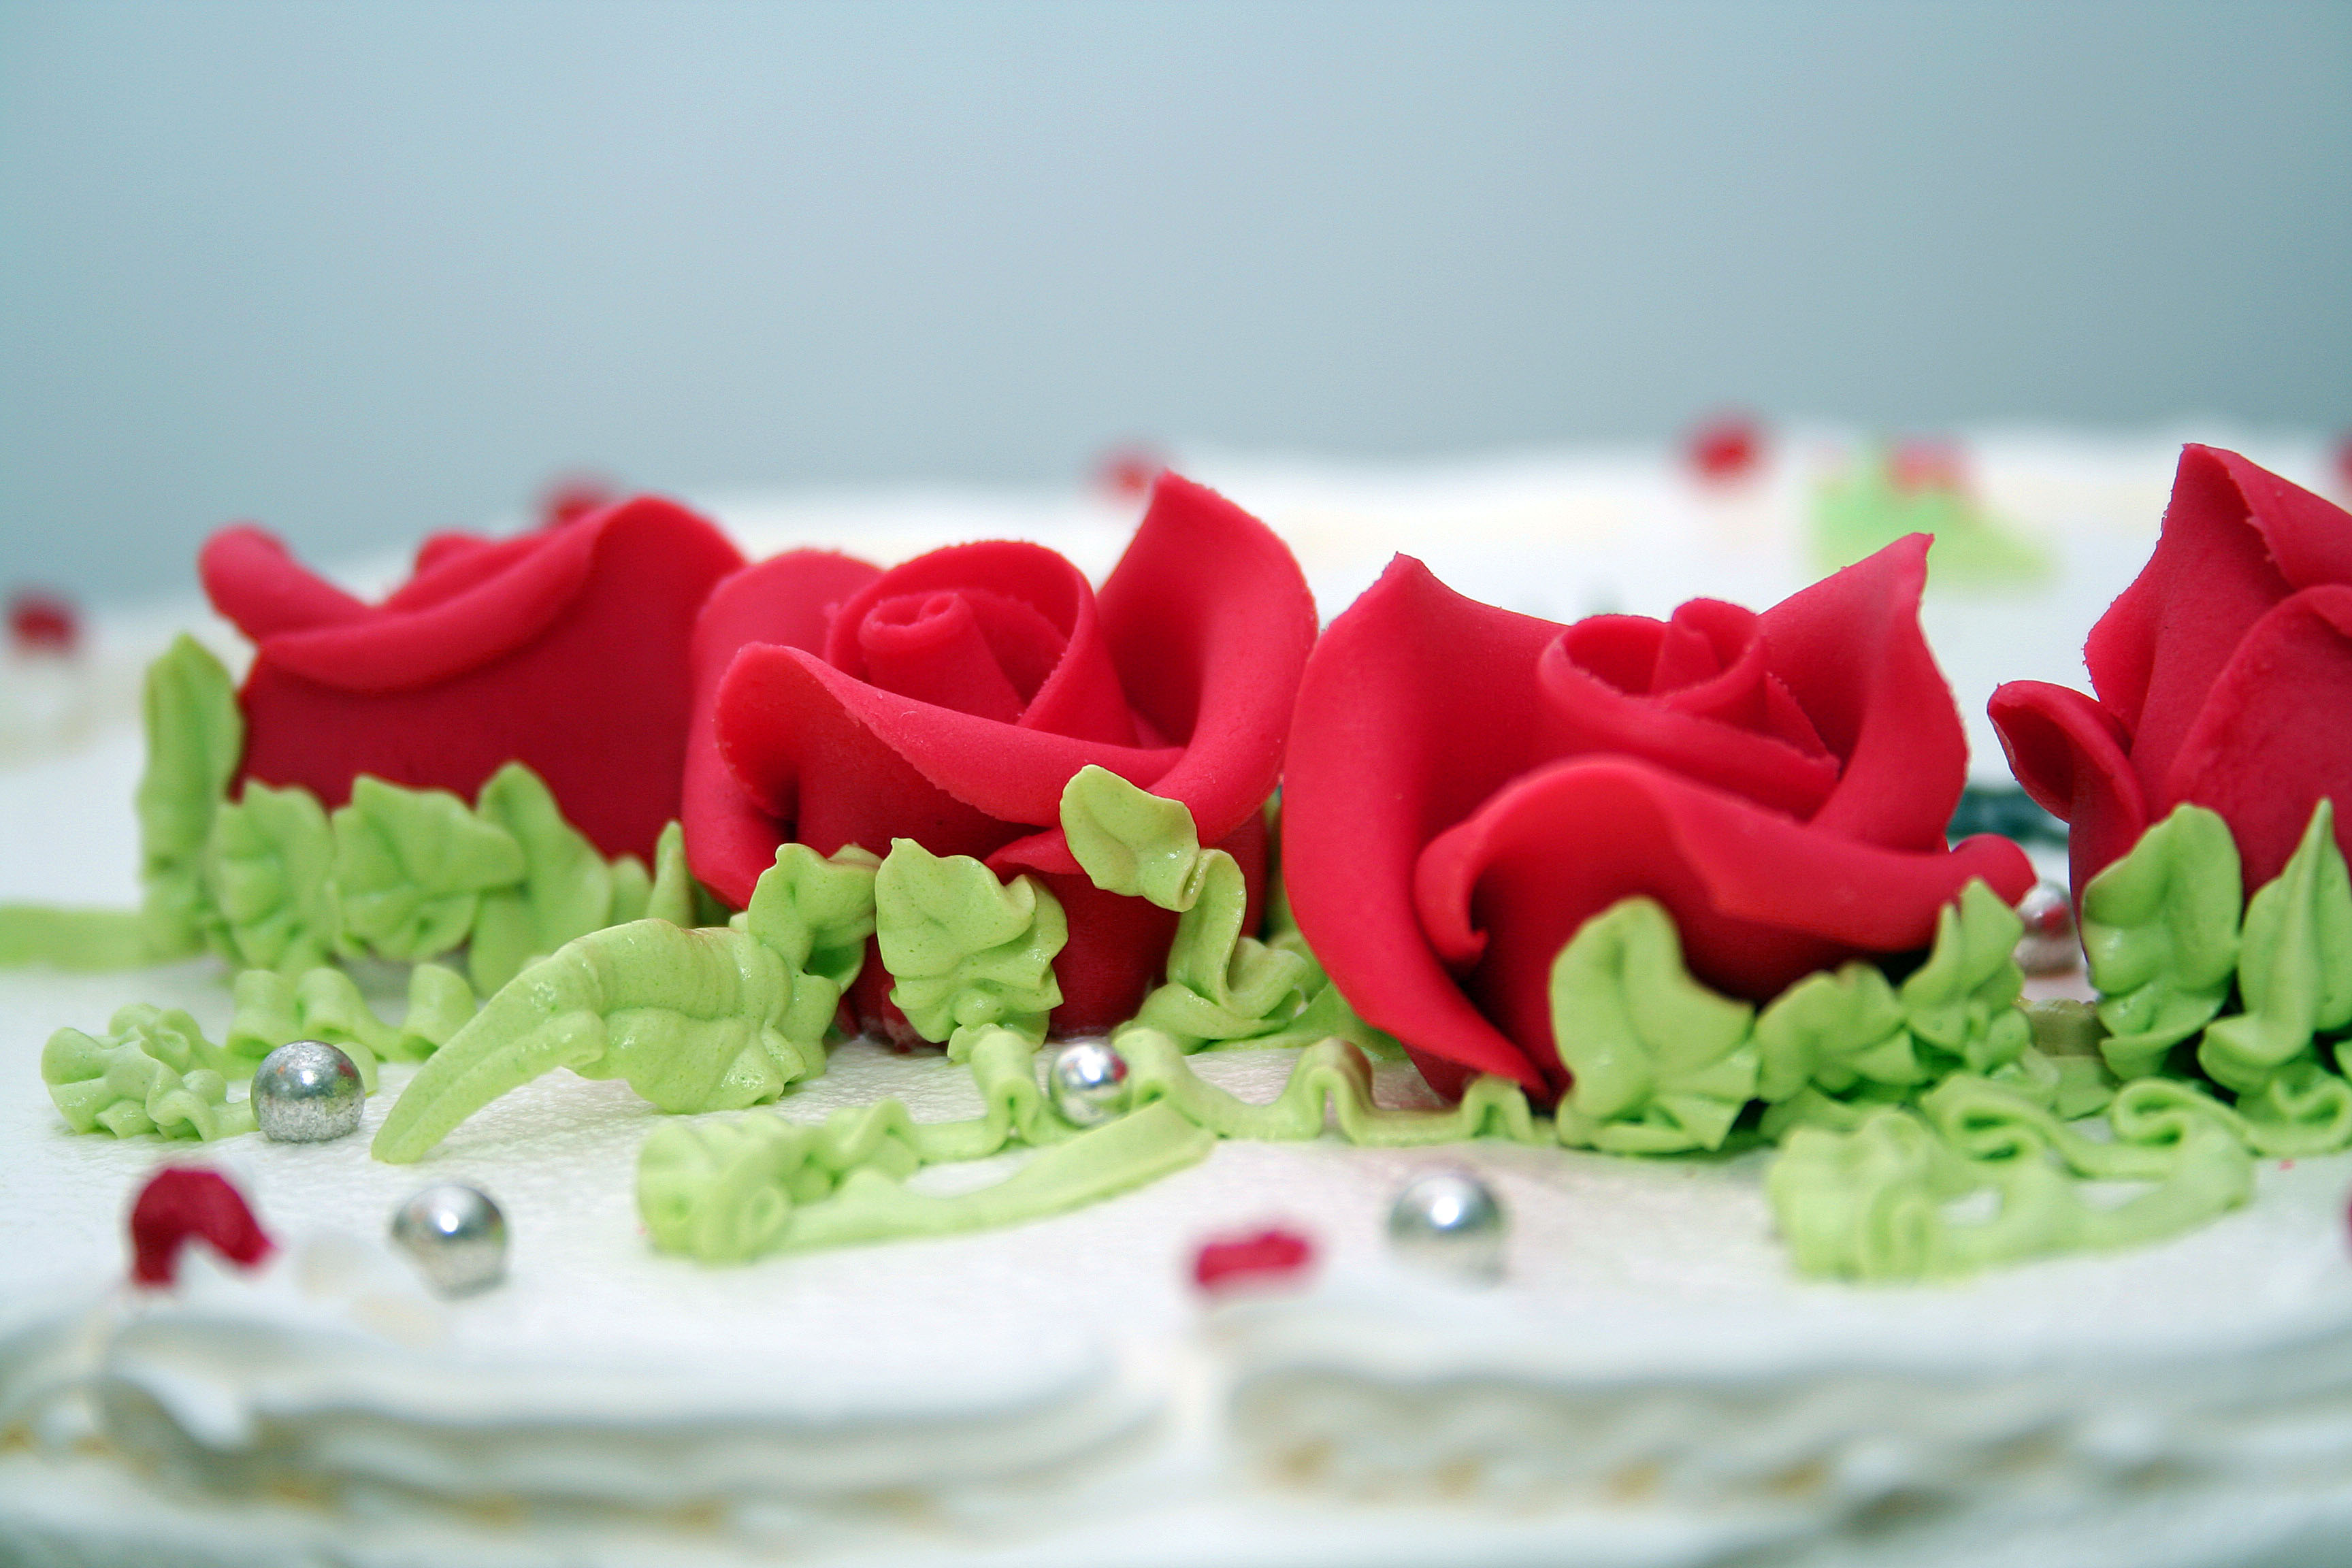 How to make sugar paste flowers